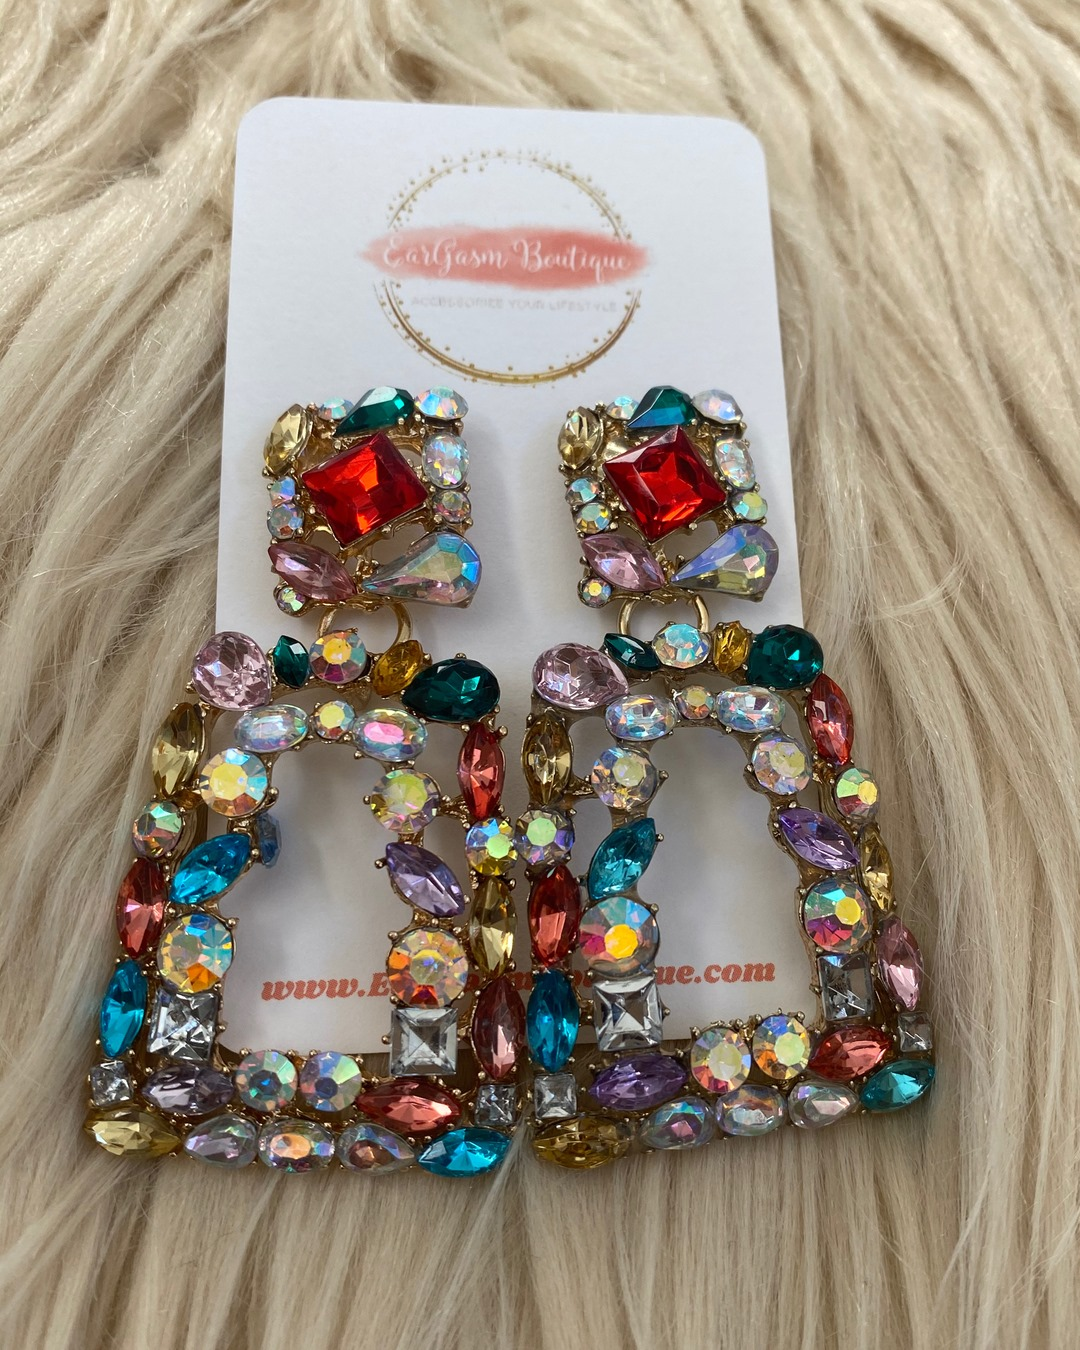 EarGasm Boutique (Earrings & Accessories)